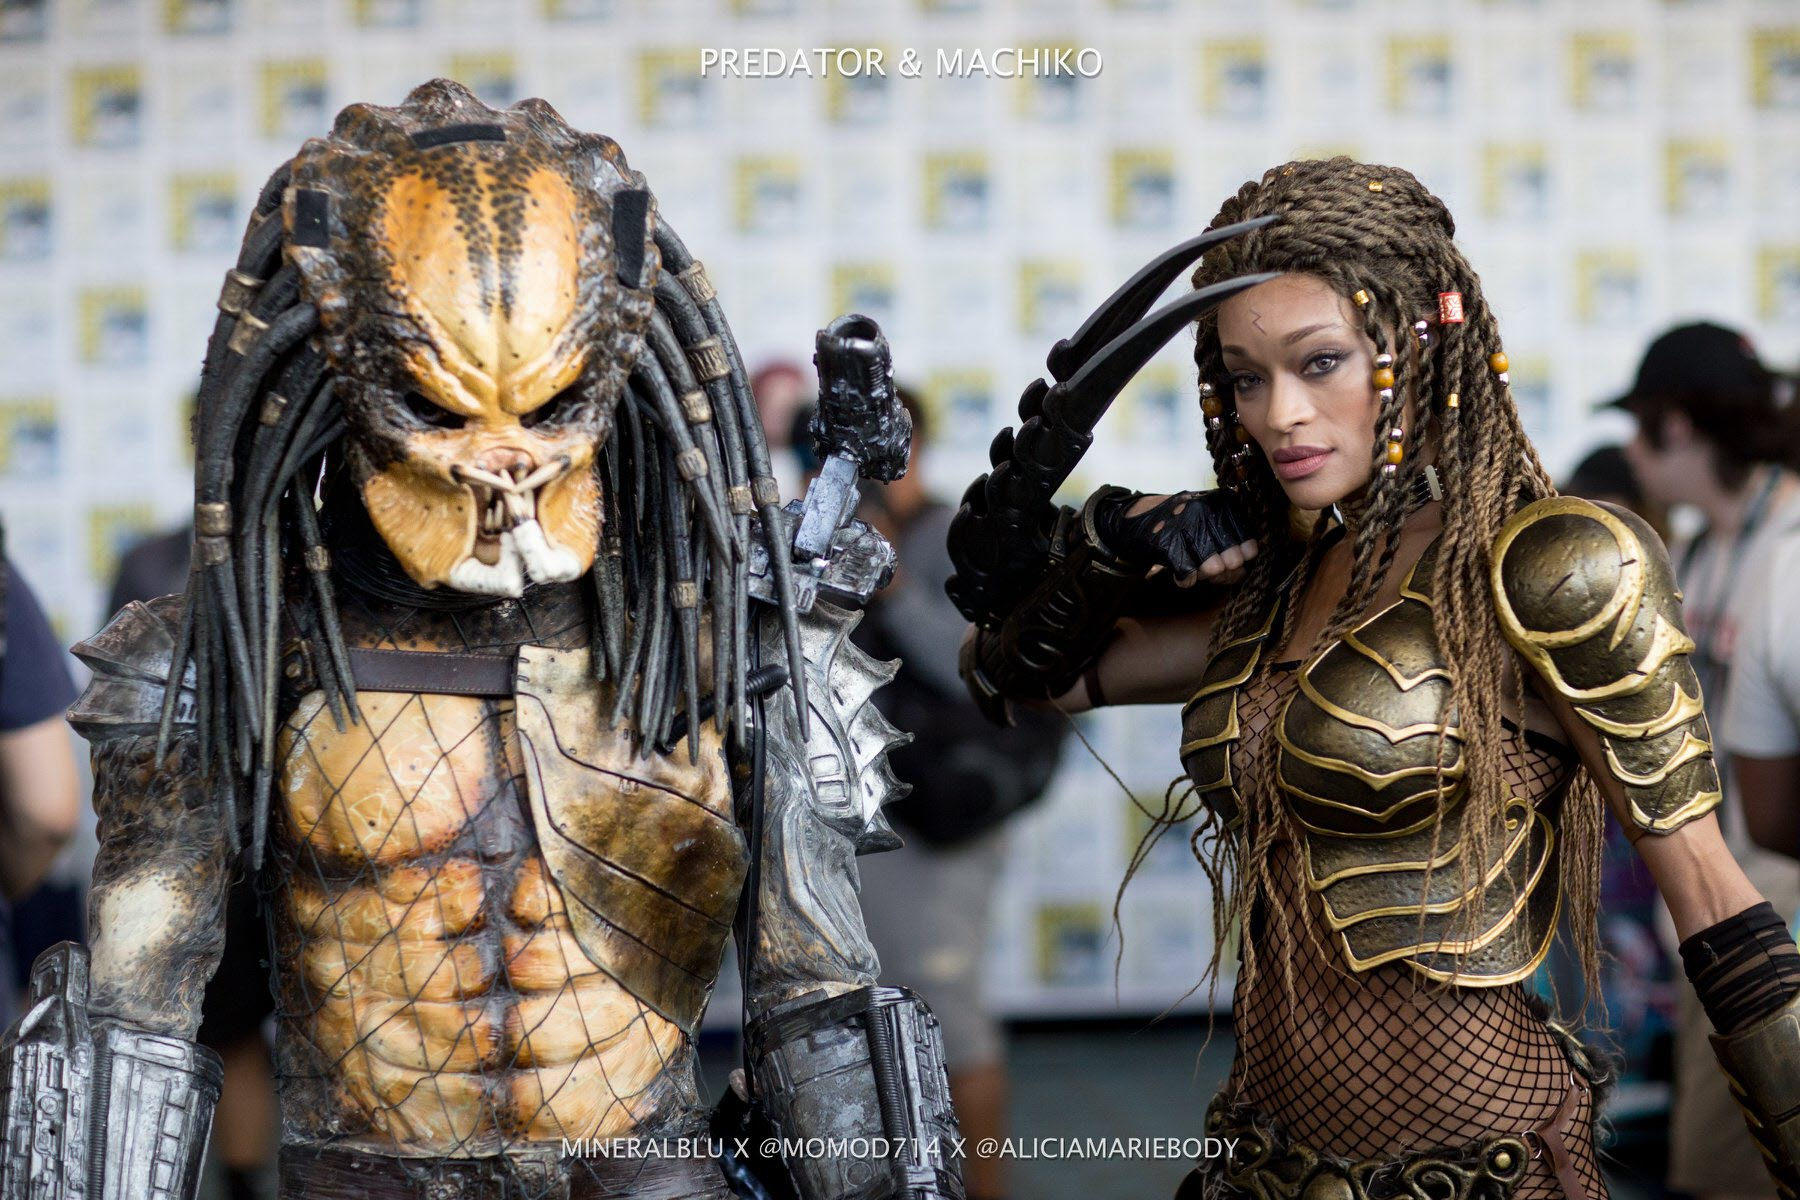 Predator and Machiko